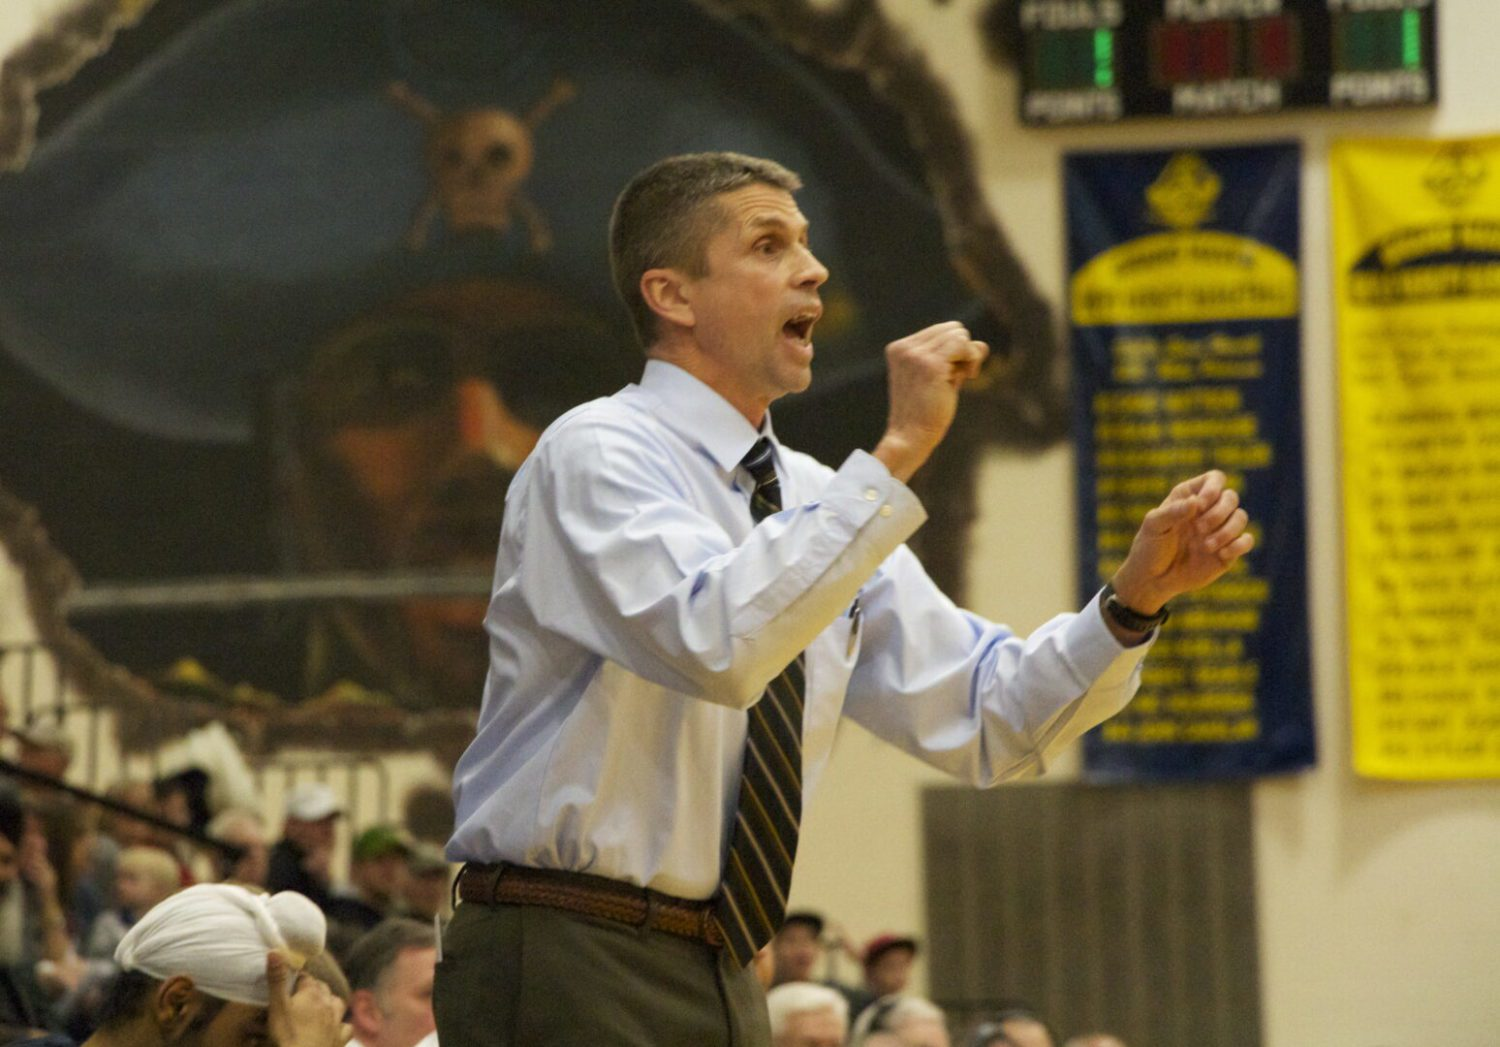 Visitation and funeral information for Grand Haven coach Hewitt